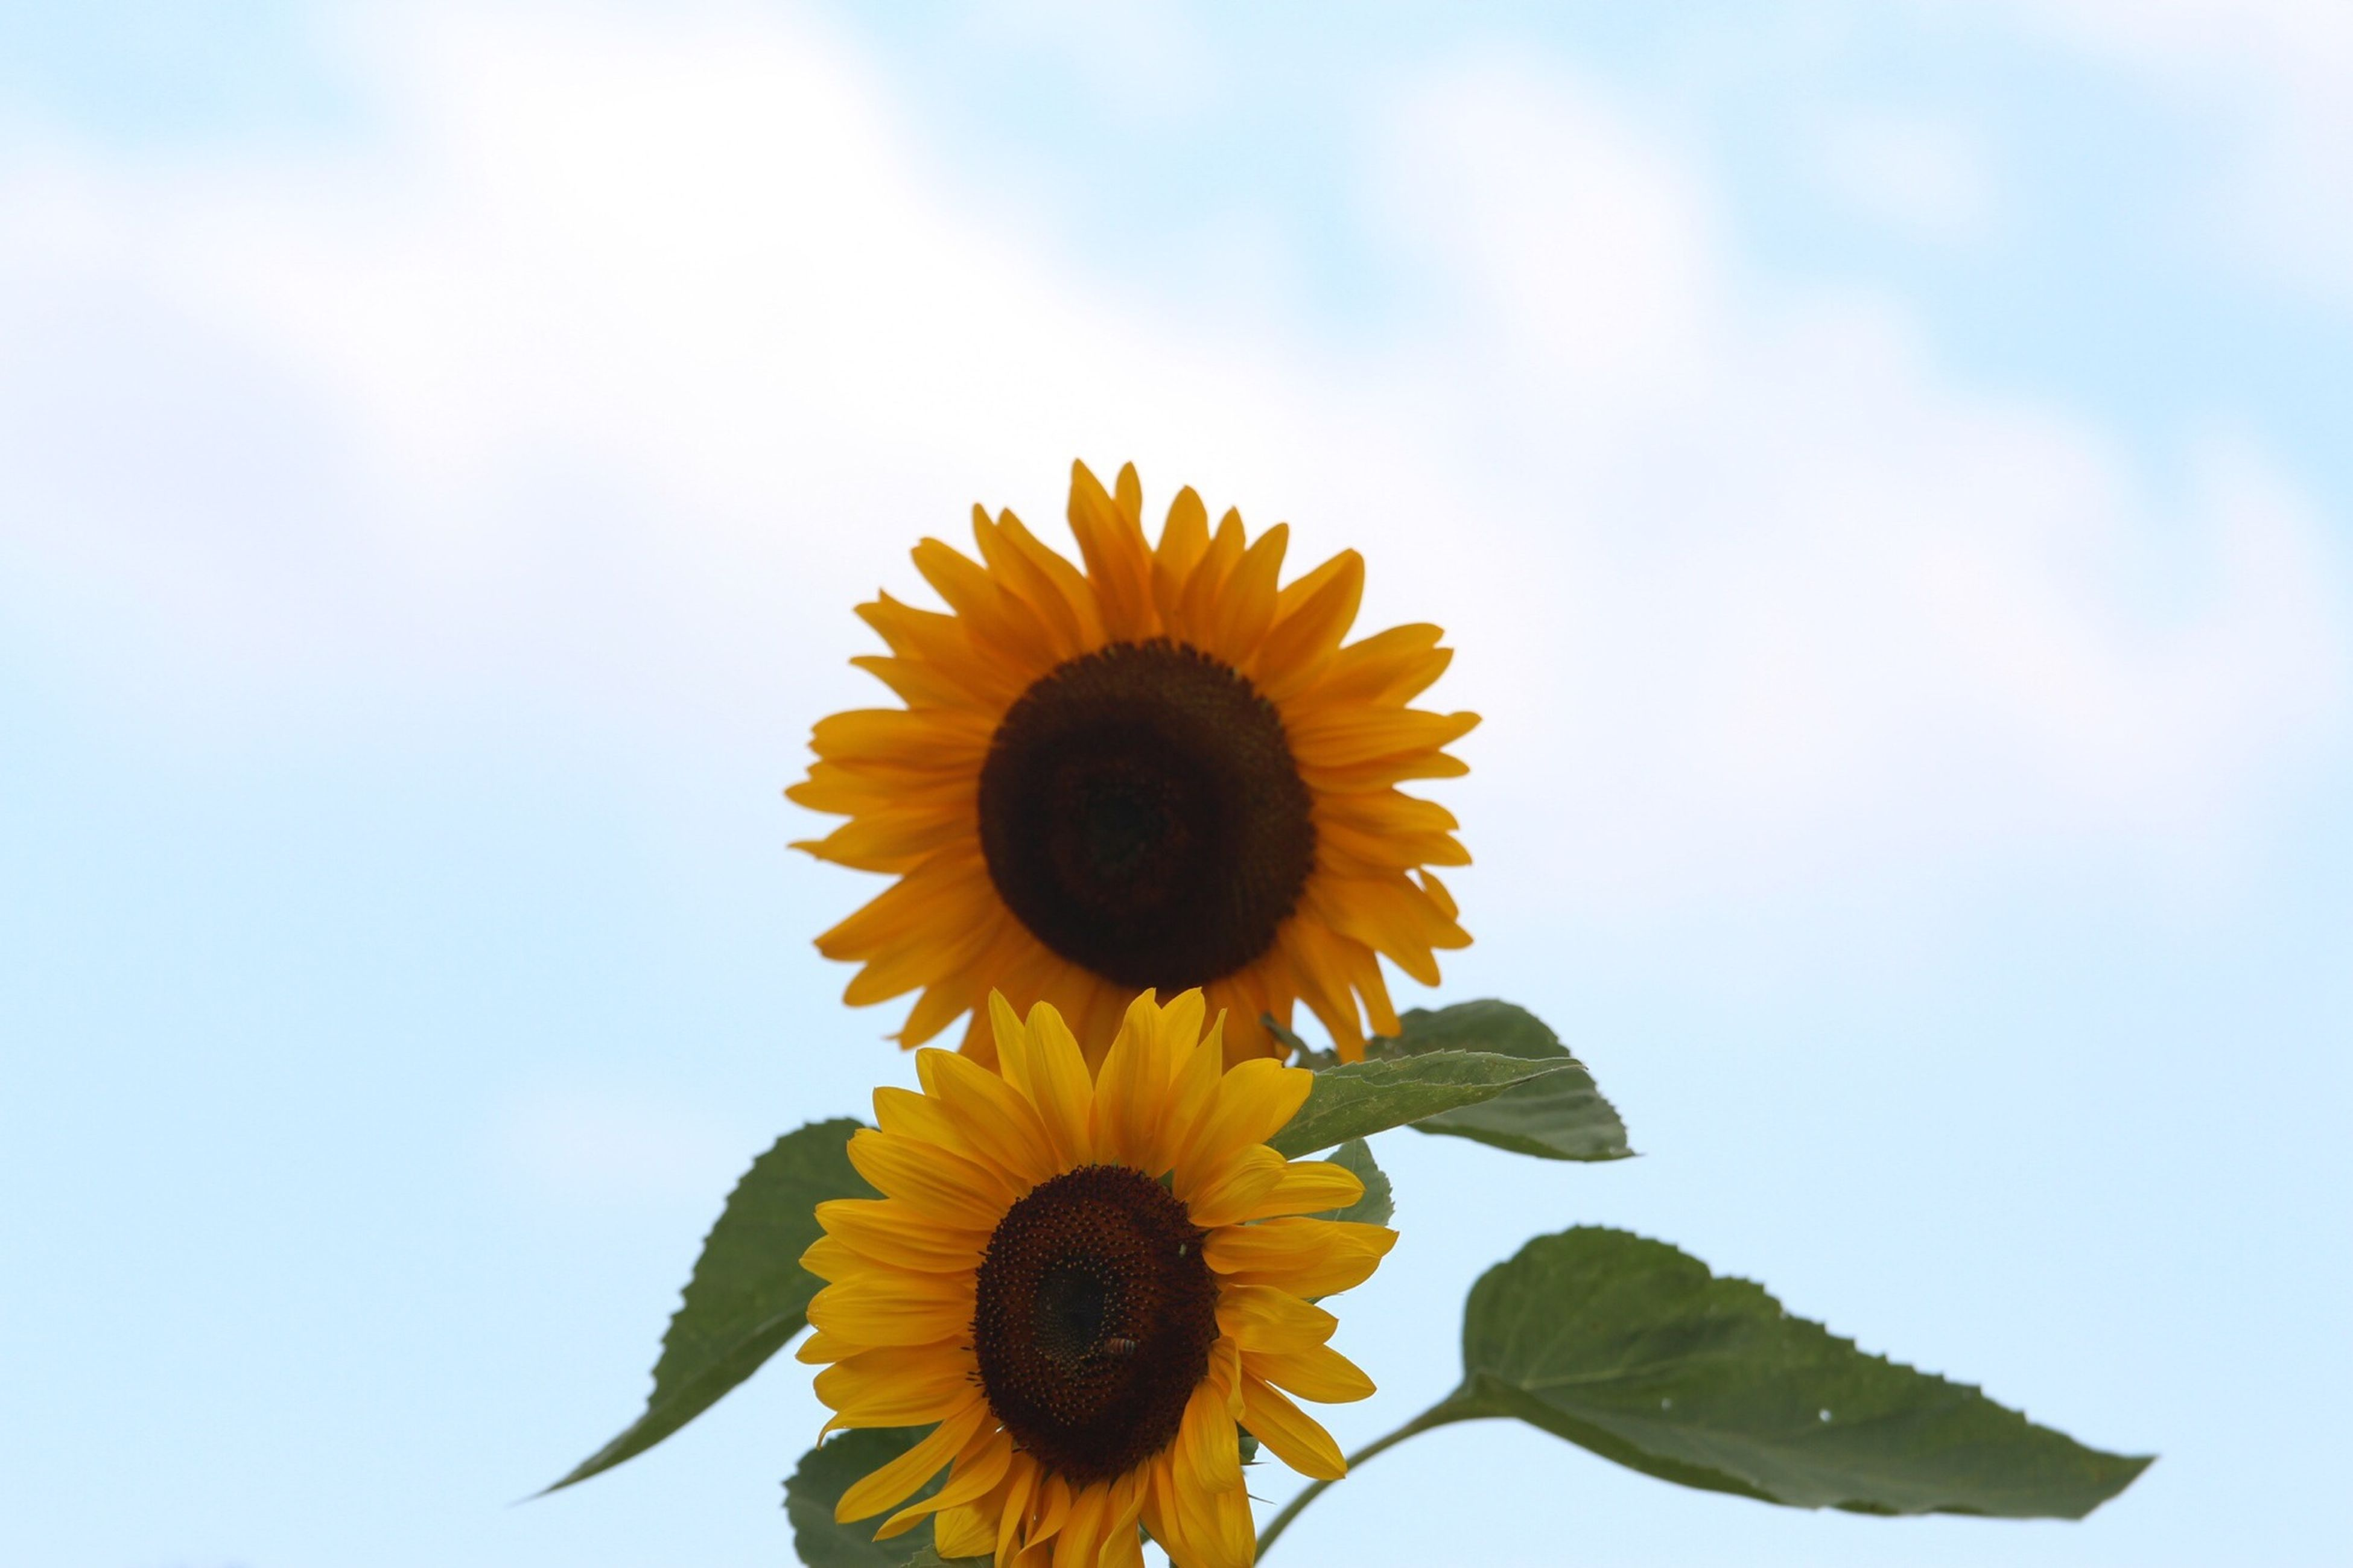 flower, yellow, freshness, sunflower, petal, flower head, fragility, growth, beauty in nature, sky, pollen, blooming, low angle view, nature, single flower, plant, close-up, in bloom, leaf, blossom